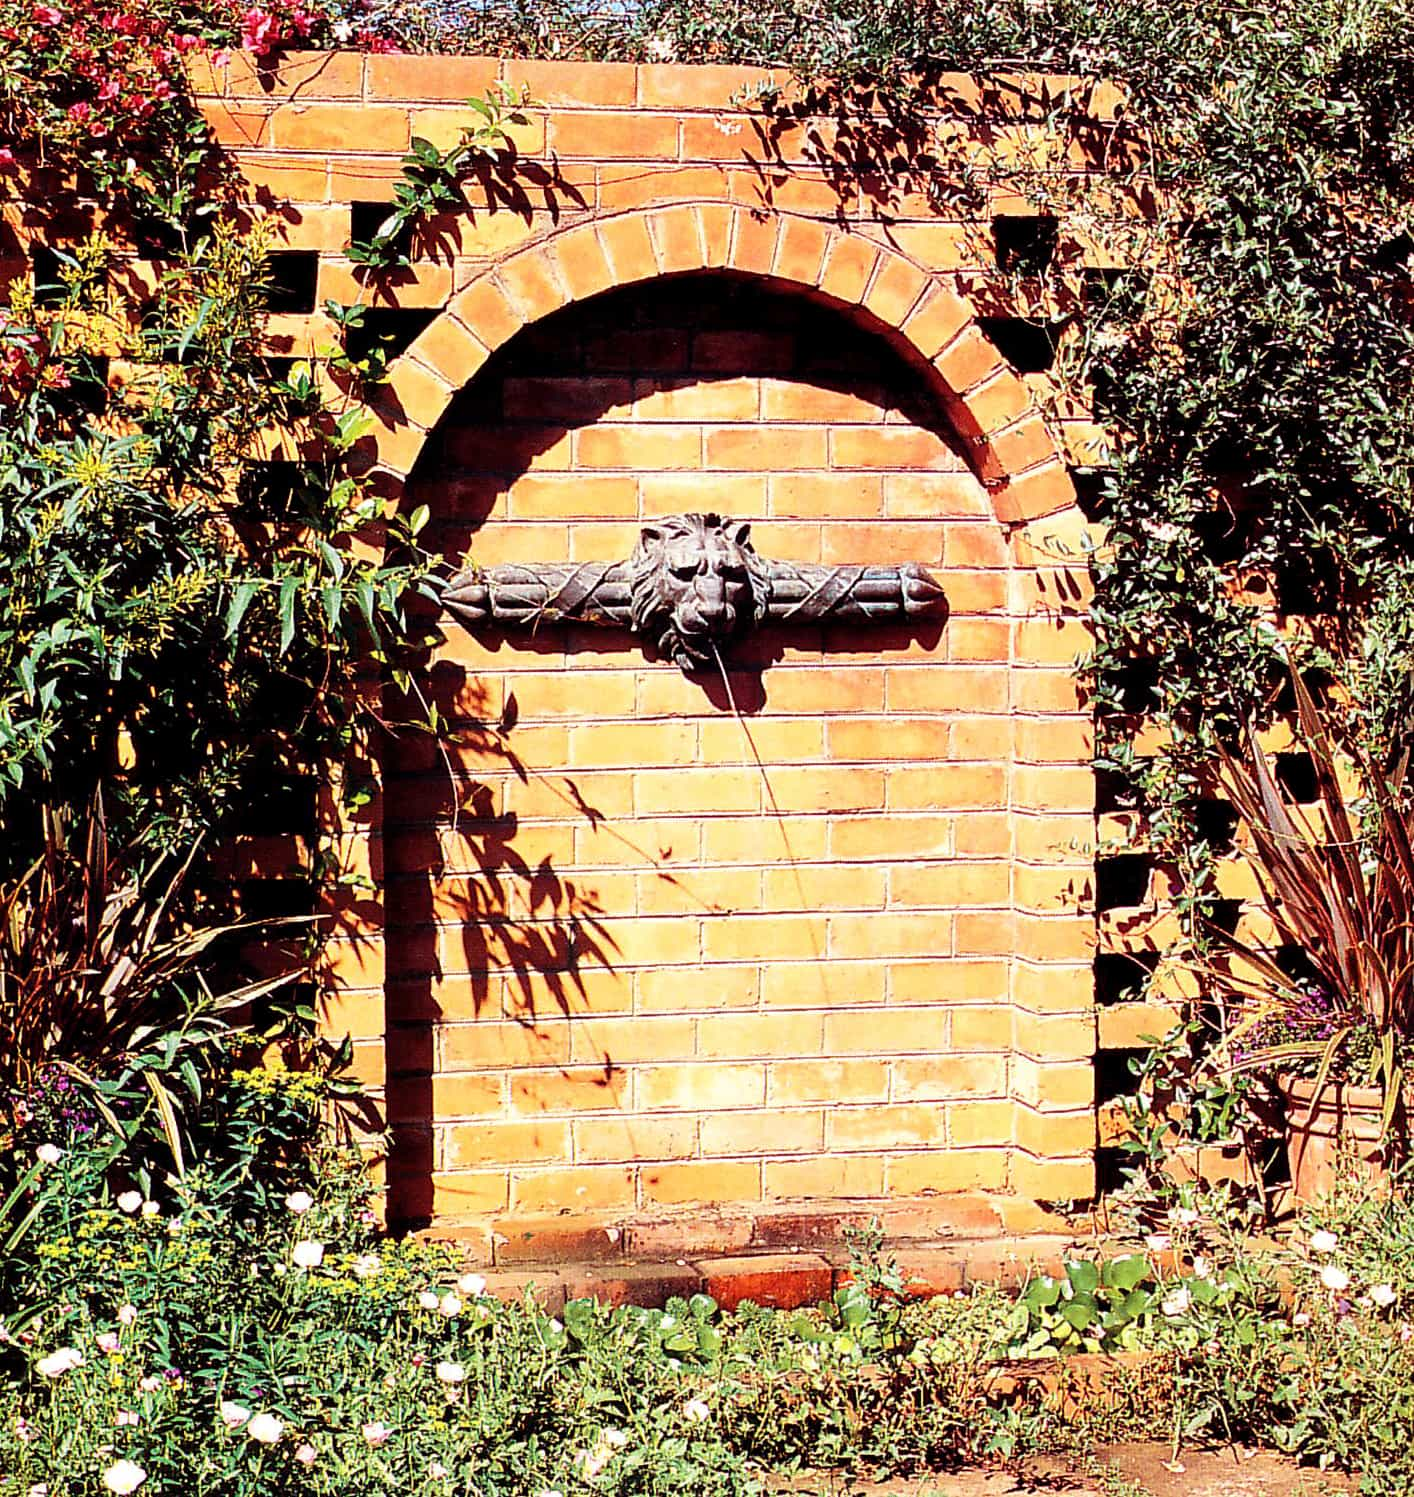 01 Wall Fountain - Fountains for Your Garden Pond